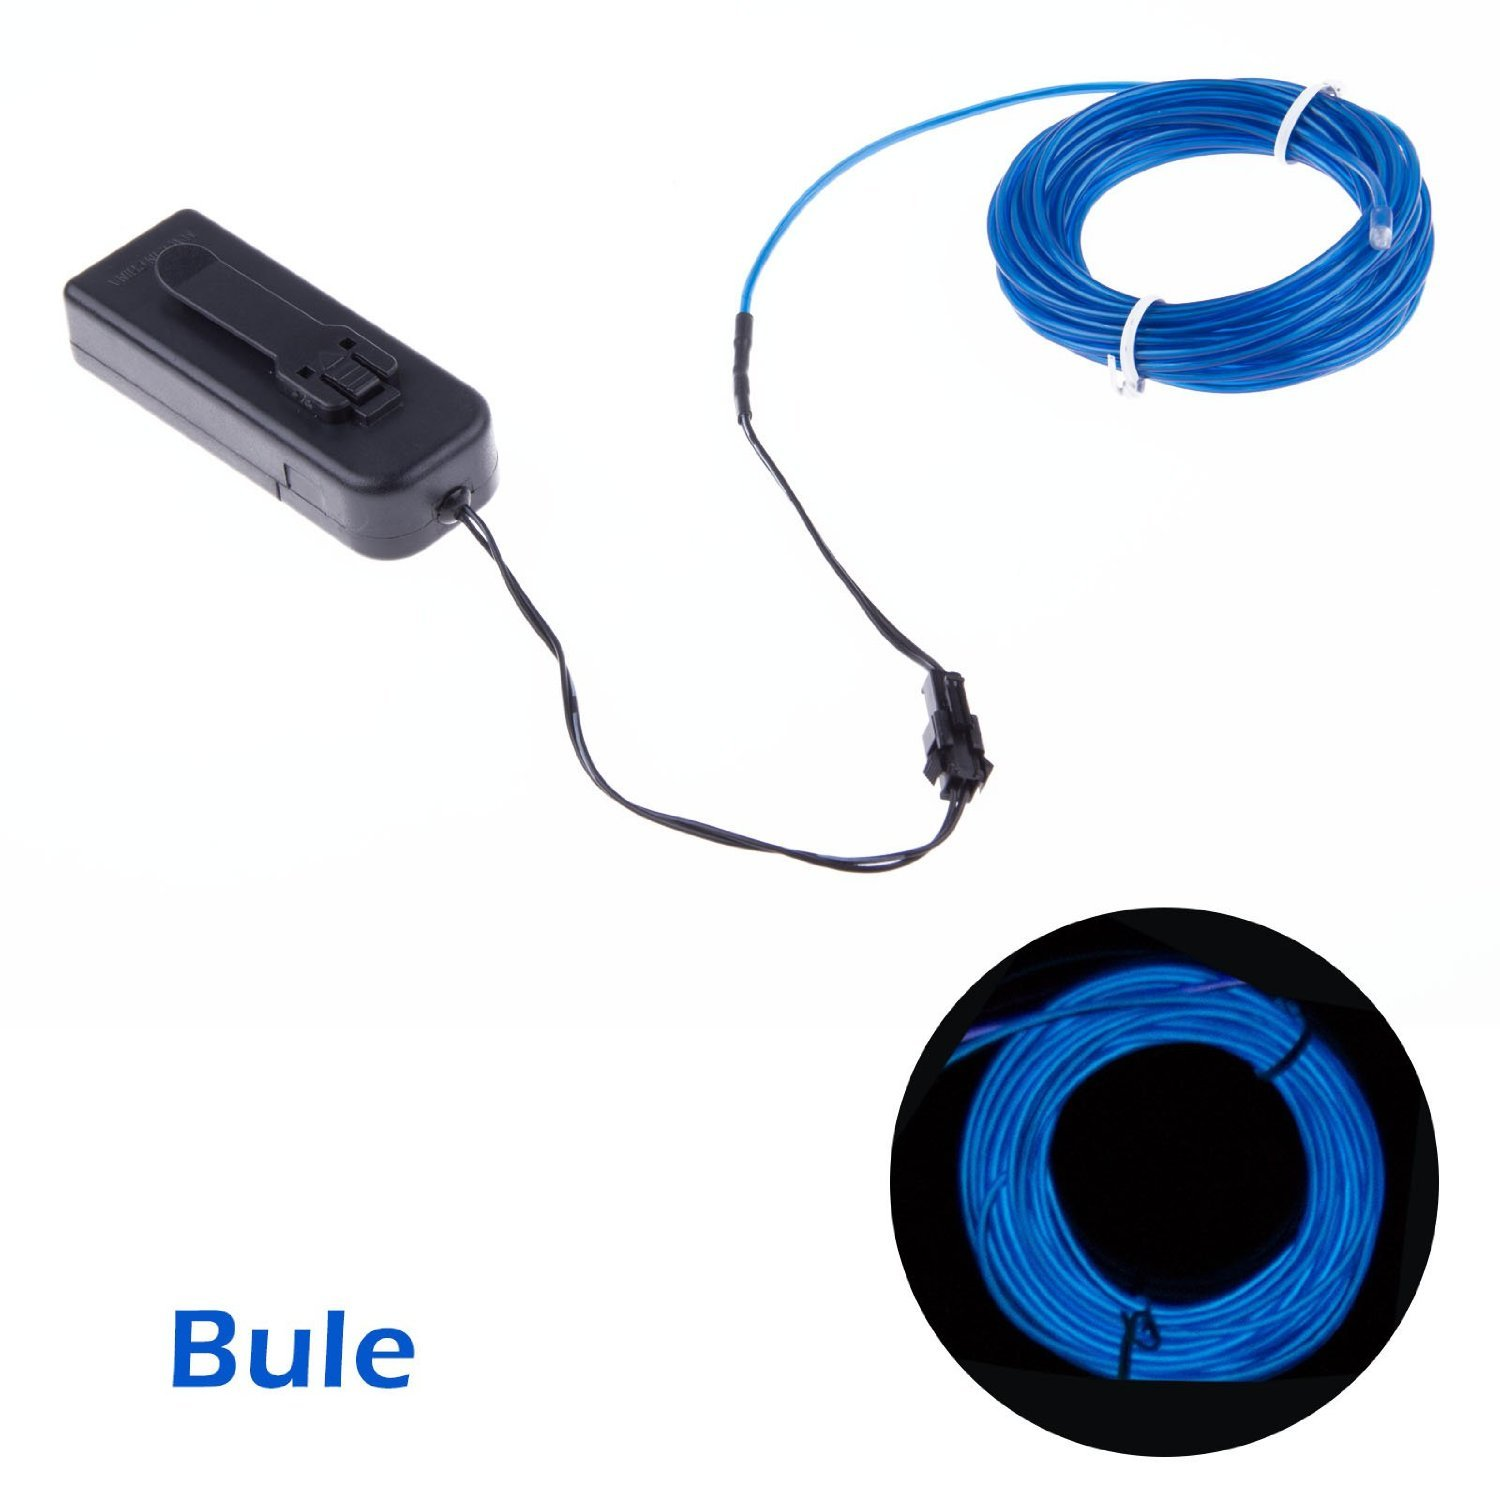 Portable EL Wire 10 Feet Long (Blue): Amazon.ca: Tools & Home ...